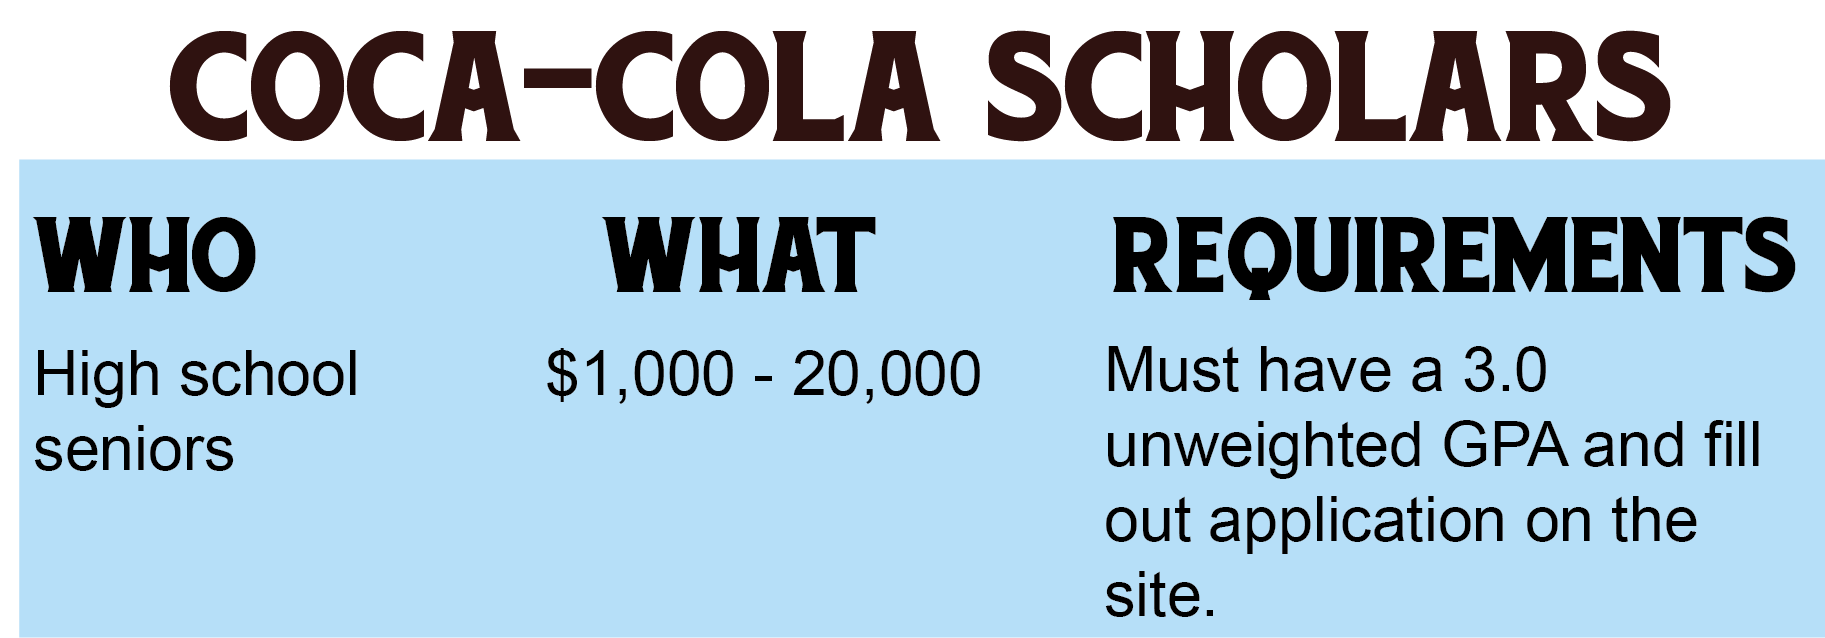 coca-cola scholarship essay prompt The coca-cola scholarship has similar requirements and aims to  academic  major, community service and a scholarship essay  the coaches are in place  to assist students with any questions concerning their time at ksu.